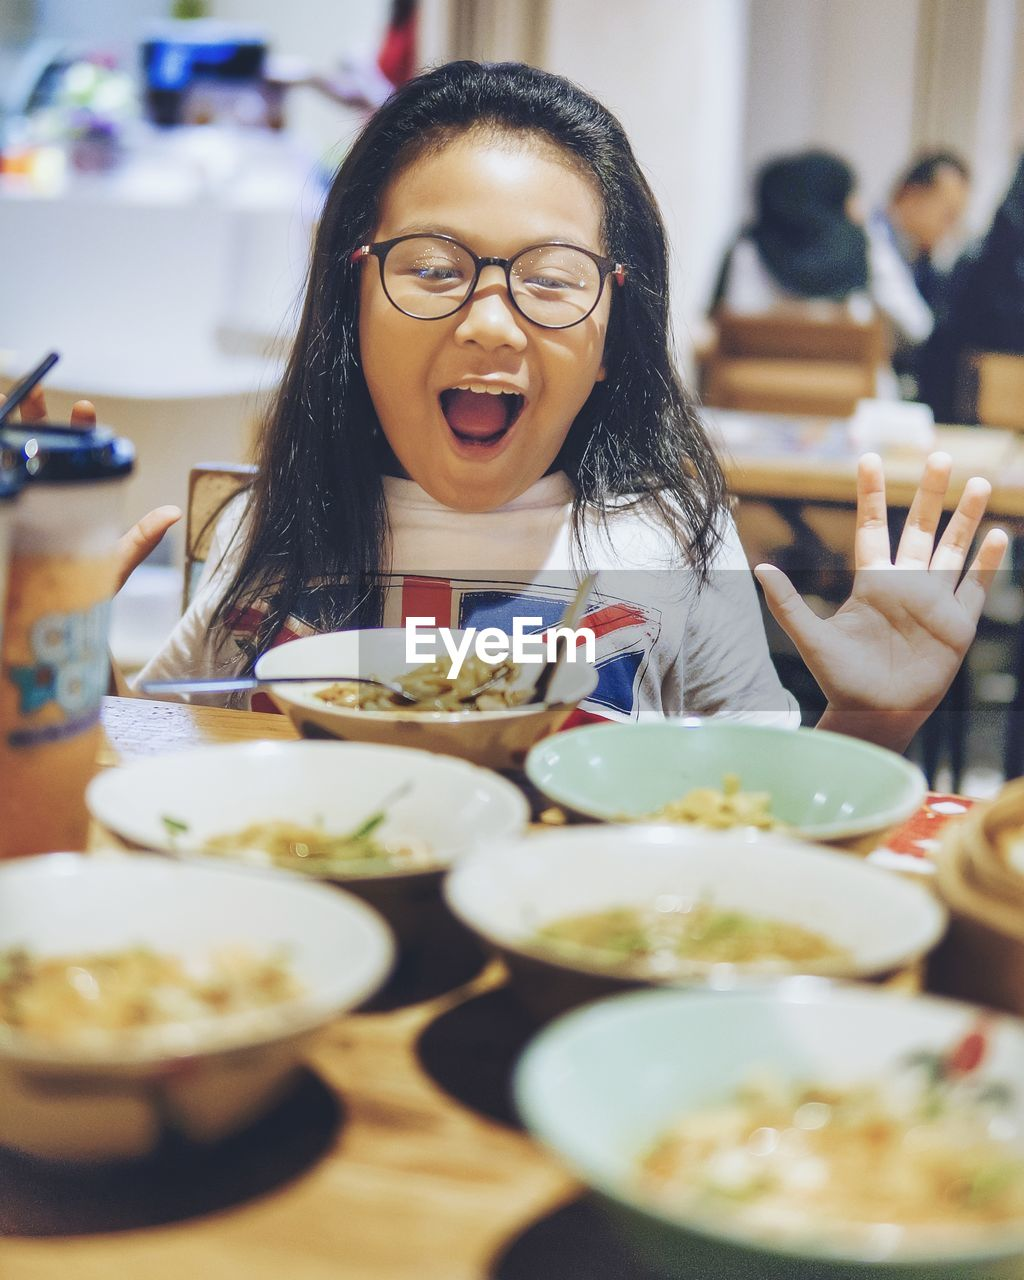 Surprised girl looking at meal on table in restaurant